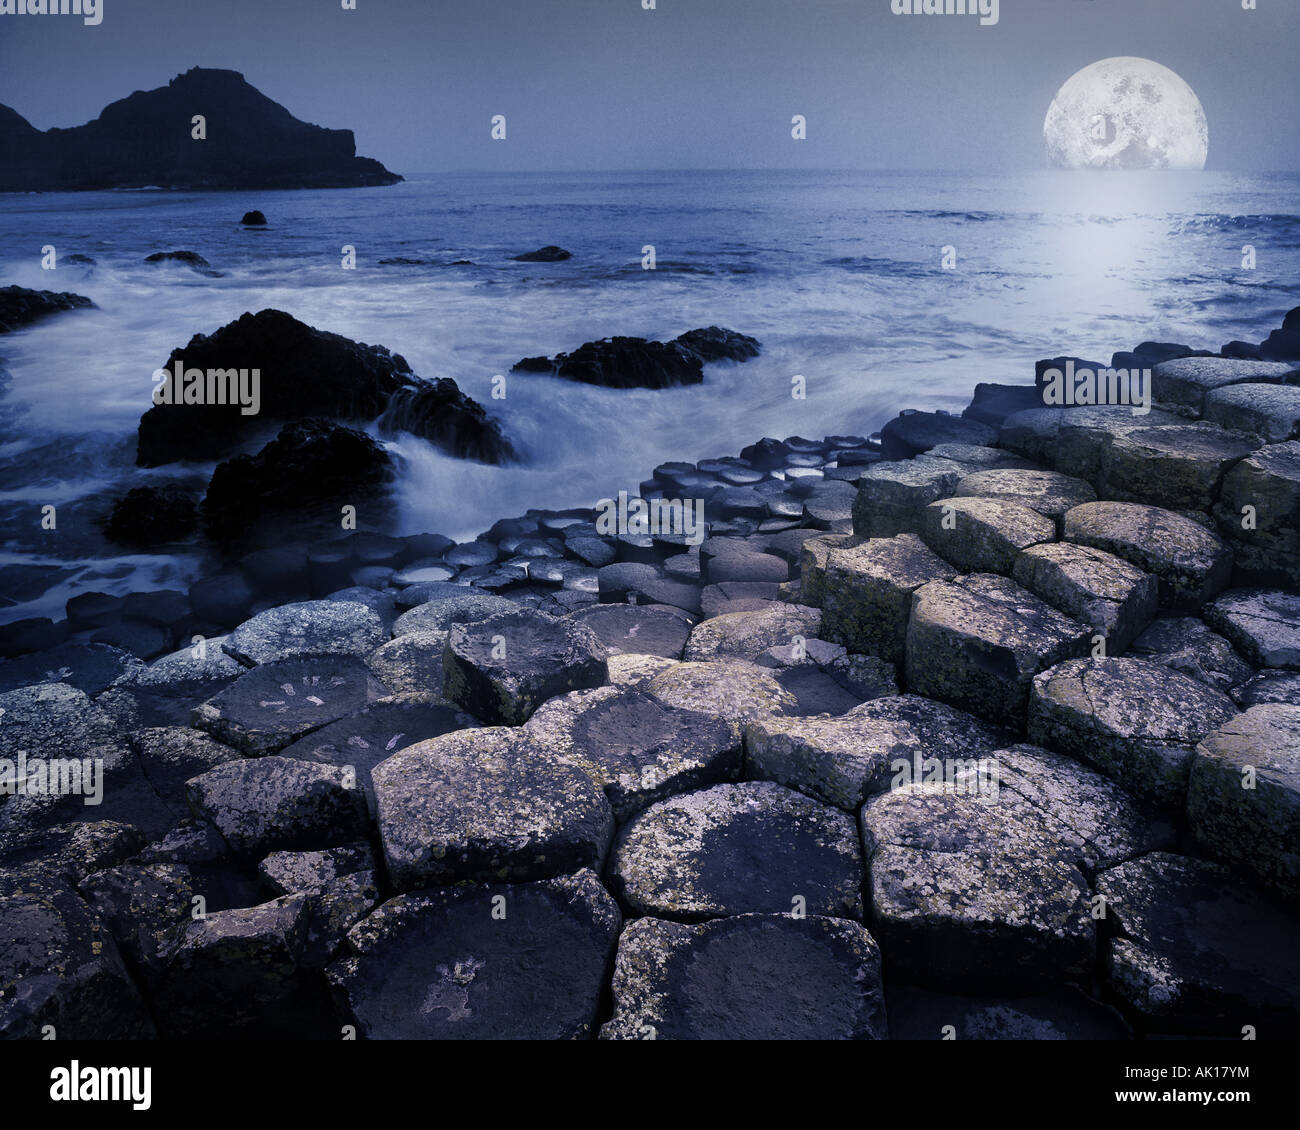 GB - NORTHERN IRELAND:  Moon at Giant's Causeway - Stock Image